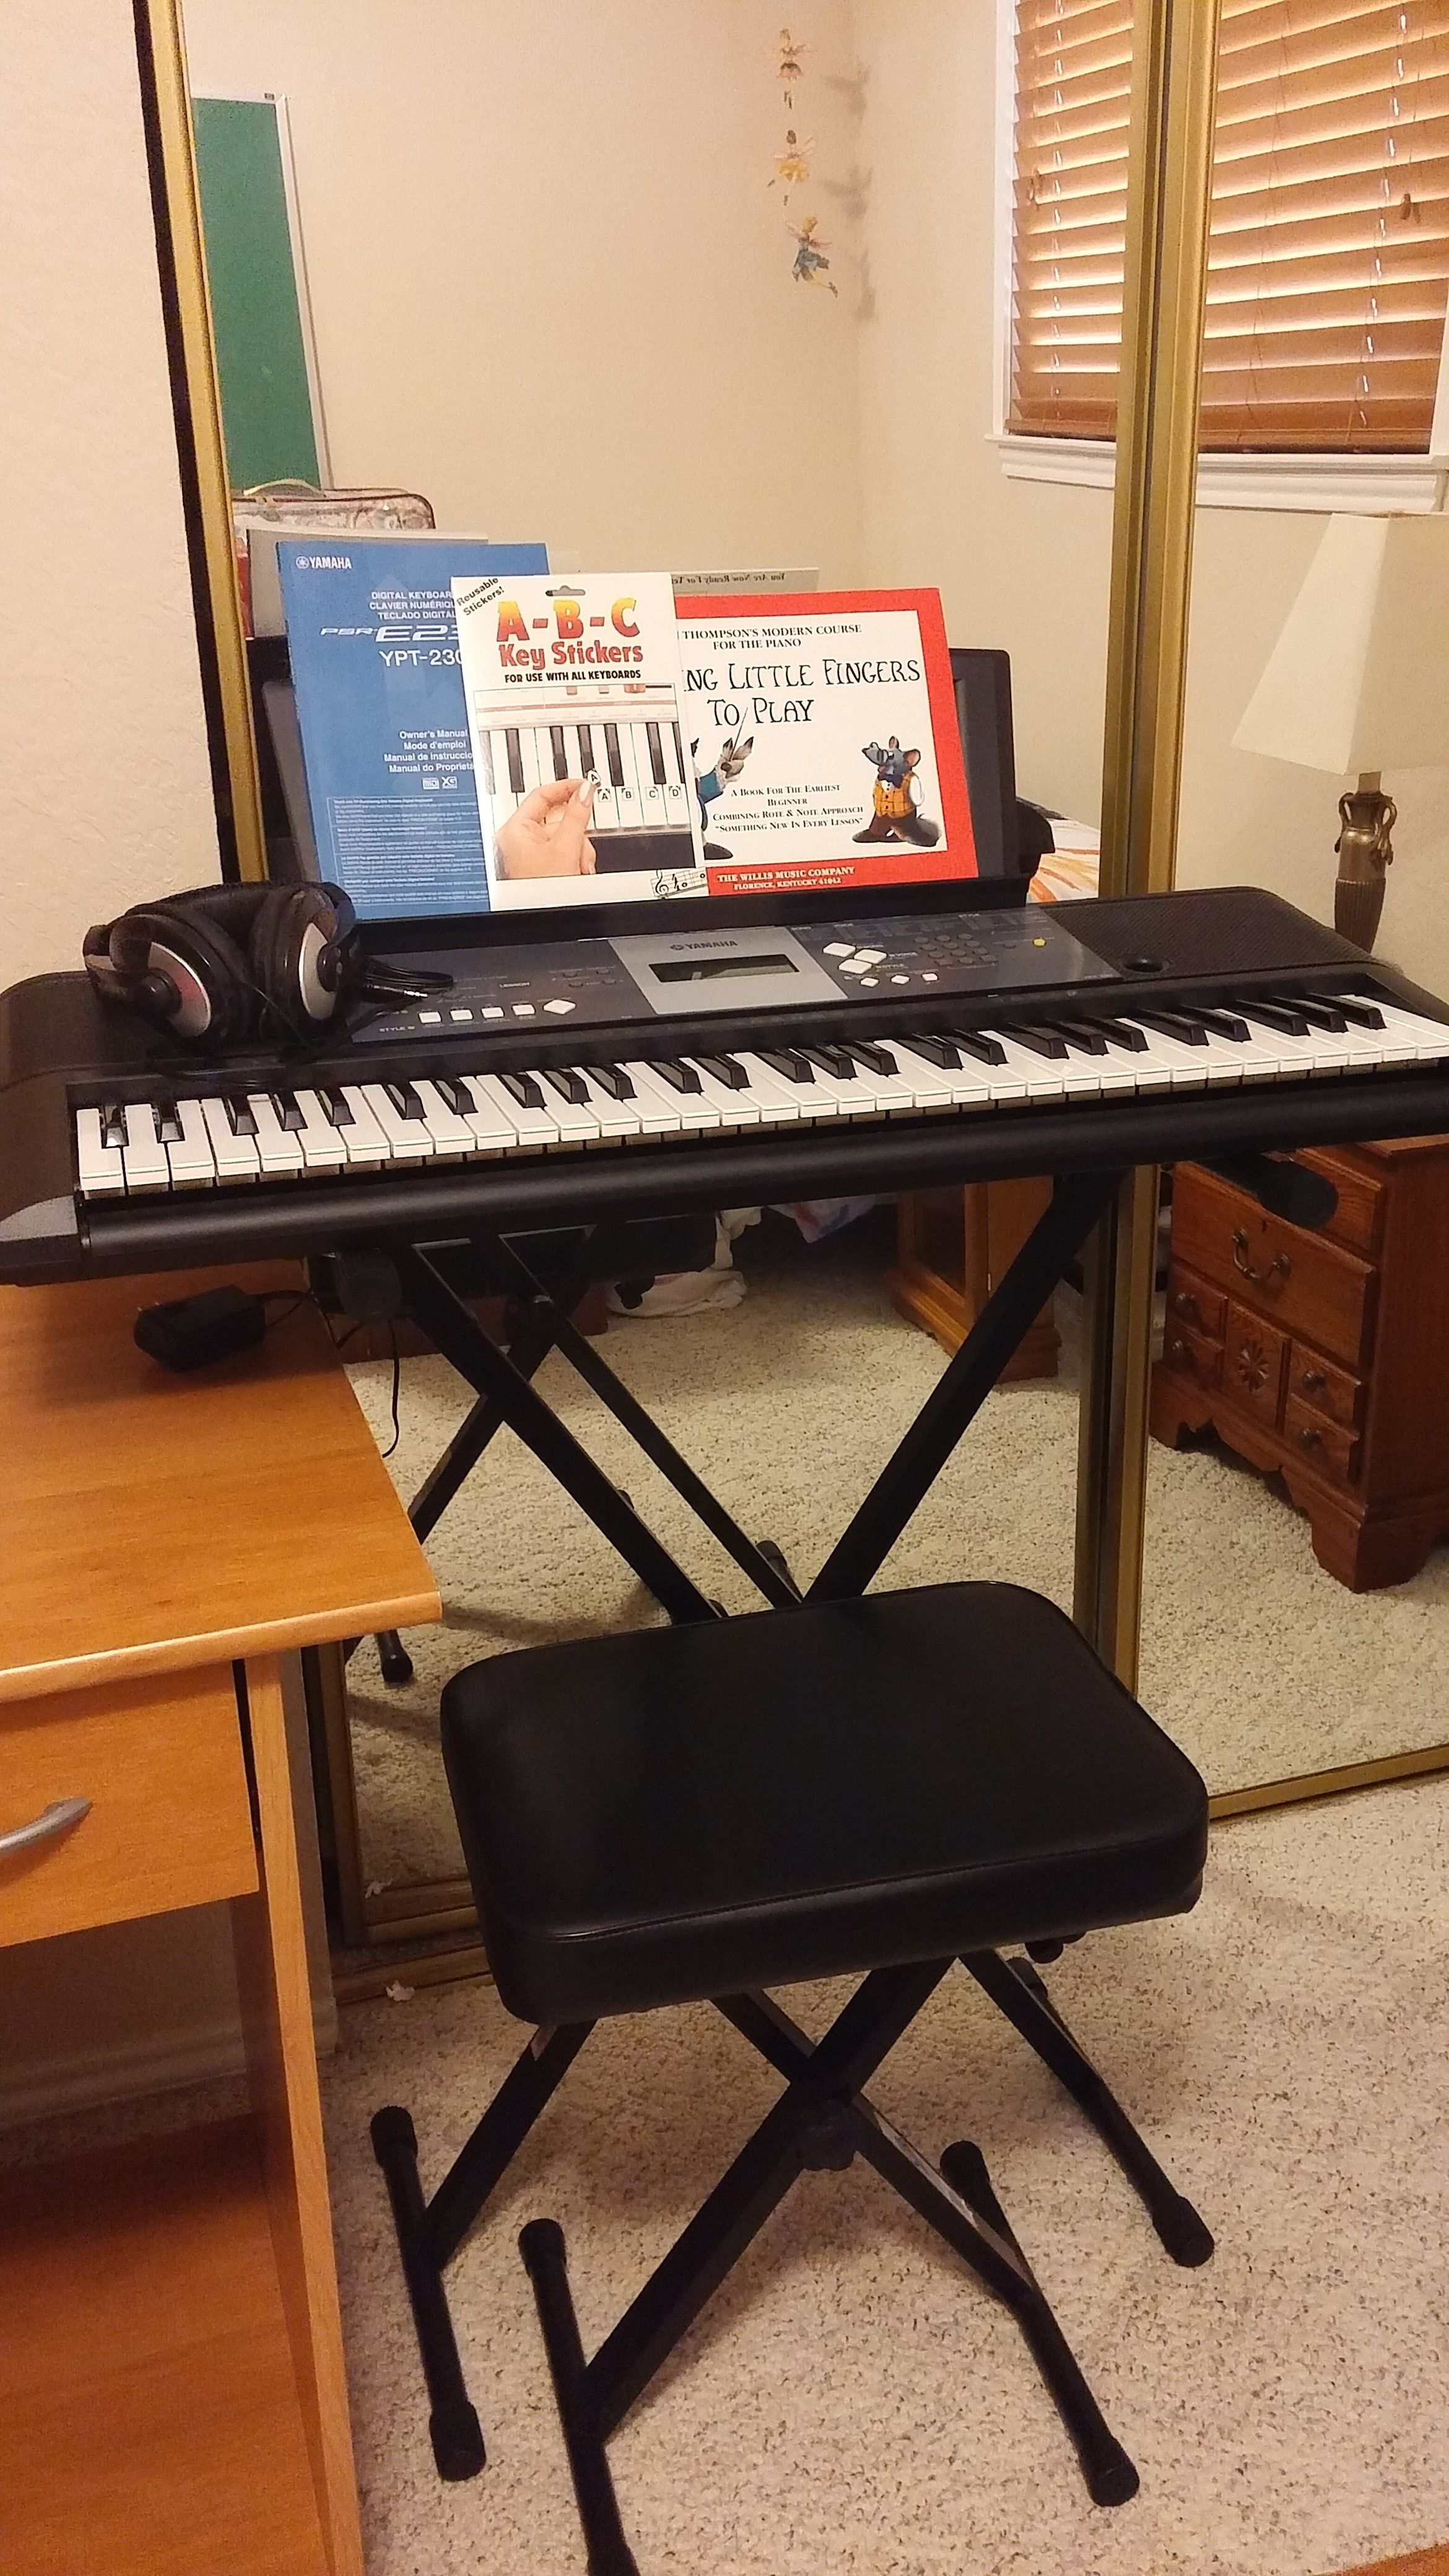 Yamaha Electronic Keyboard In Formysale S Garage Sale Mckinney Tx Padded Stool Garage Sales Garage